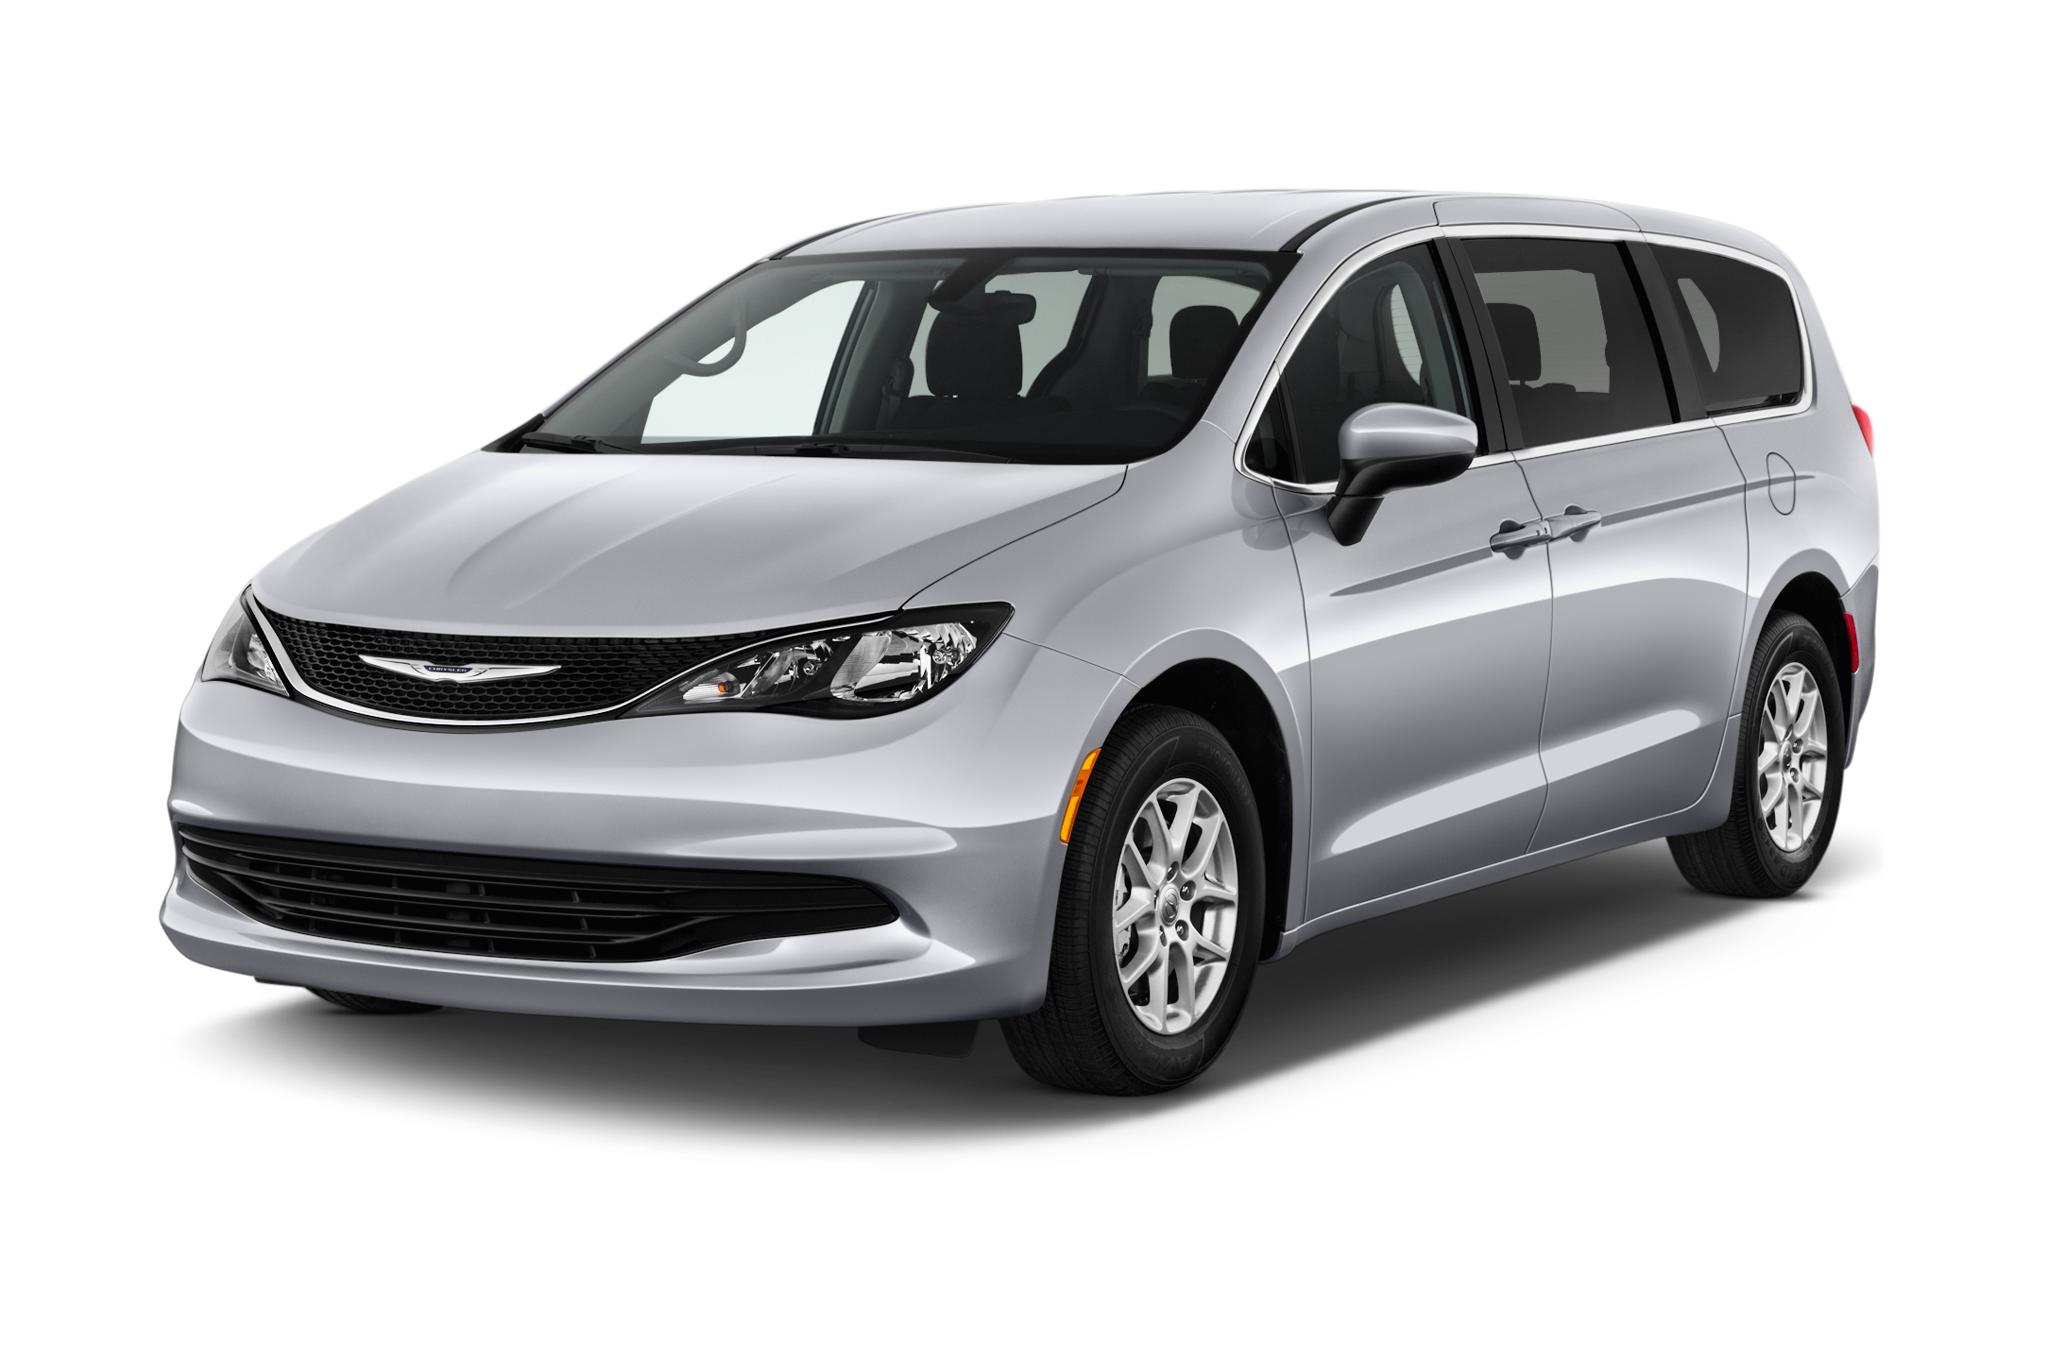 2017 Chrysler pacifica special